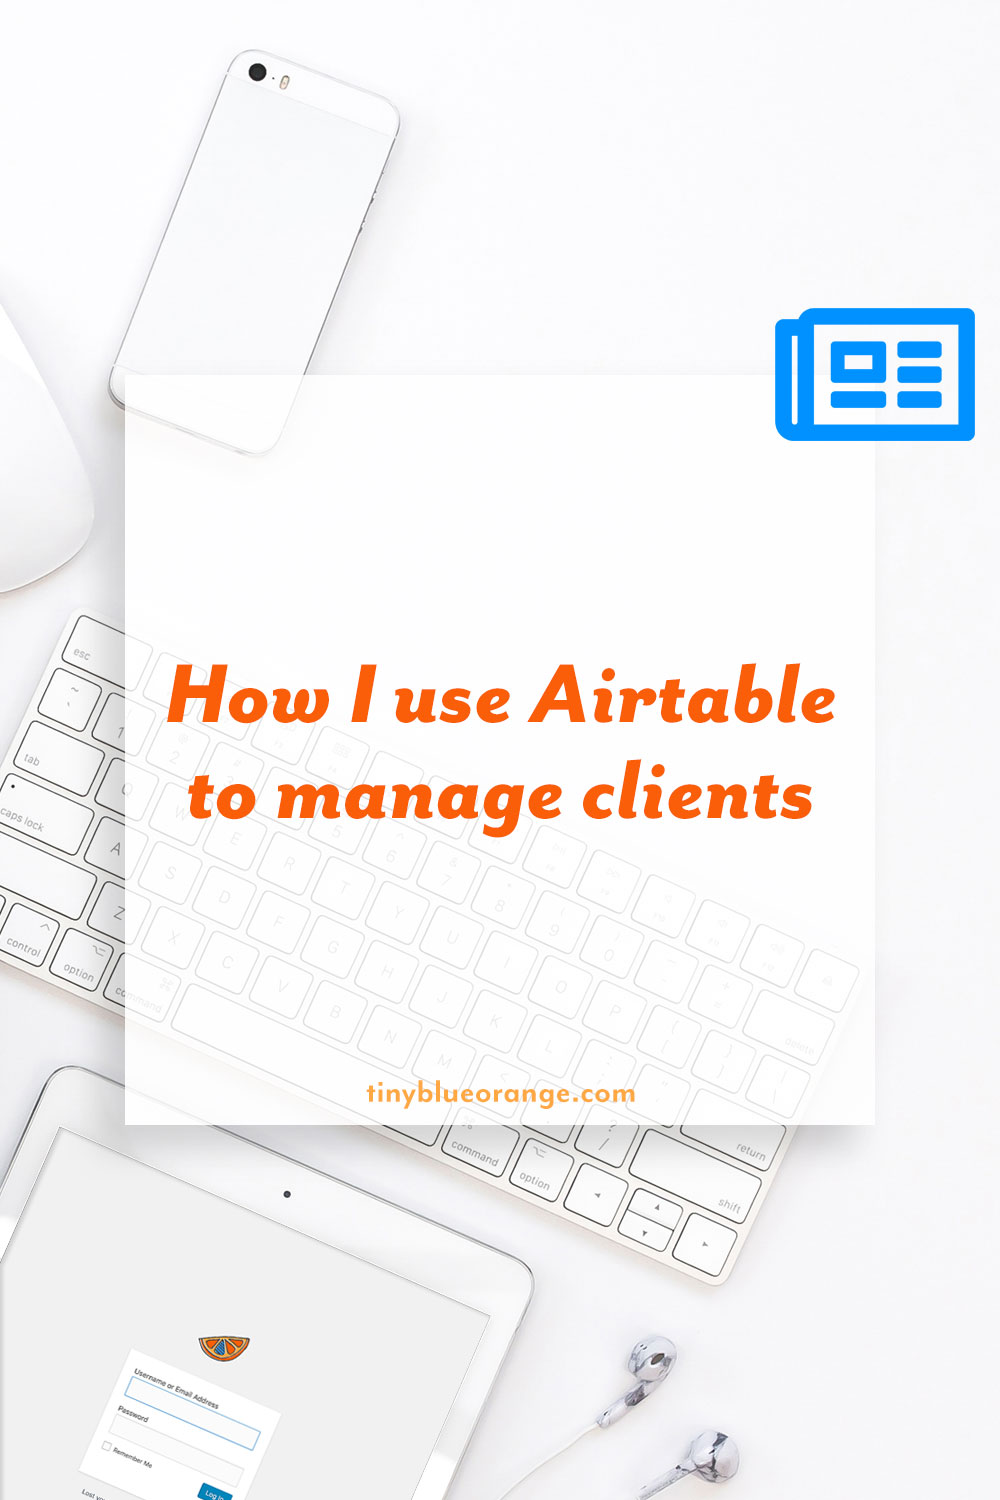 How to manage clients with Airtable as a CRM (track contact